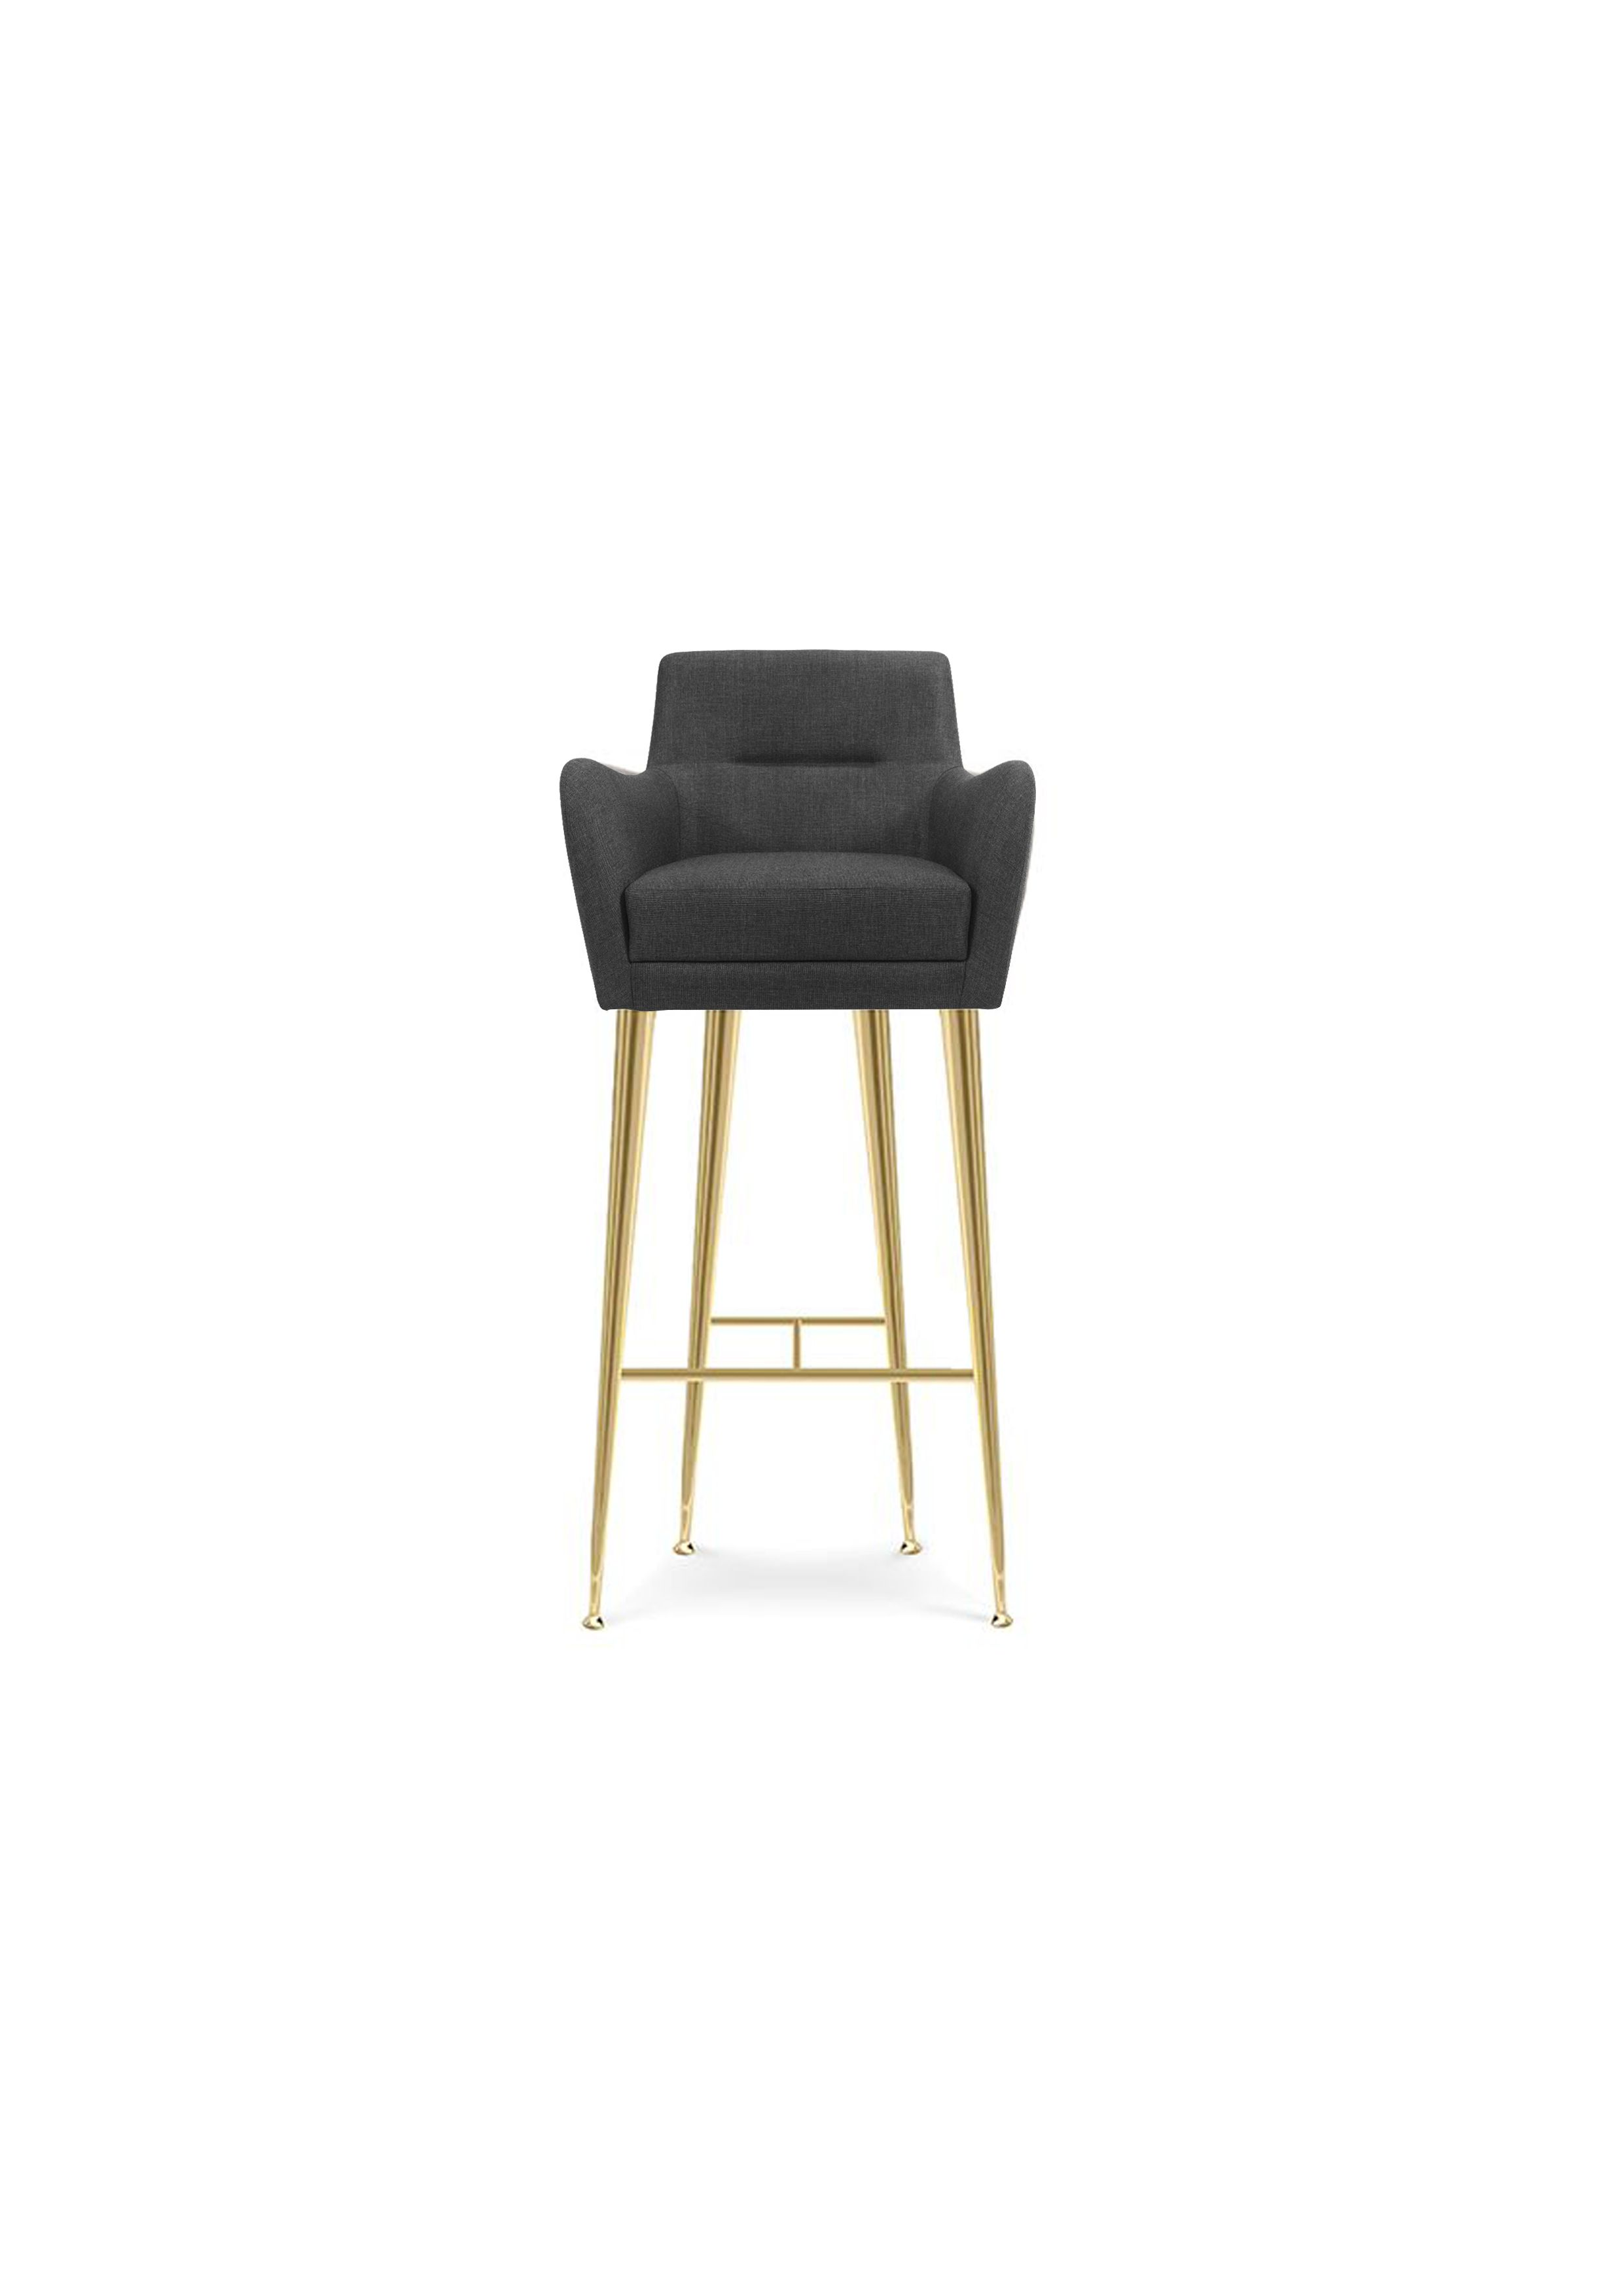 modern furniture brand. The Best Home Decor For Your Interior! Get Inspired By Midcentury Modern Furniture Brand Essential T